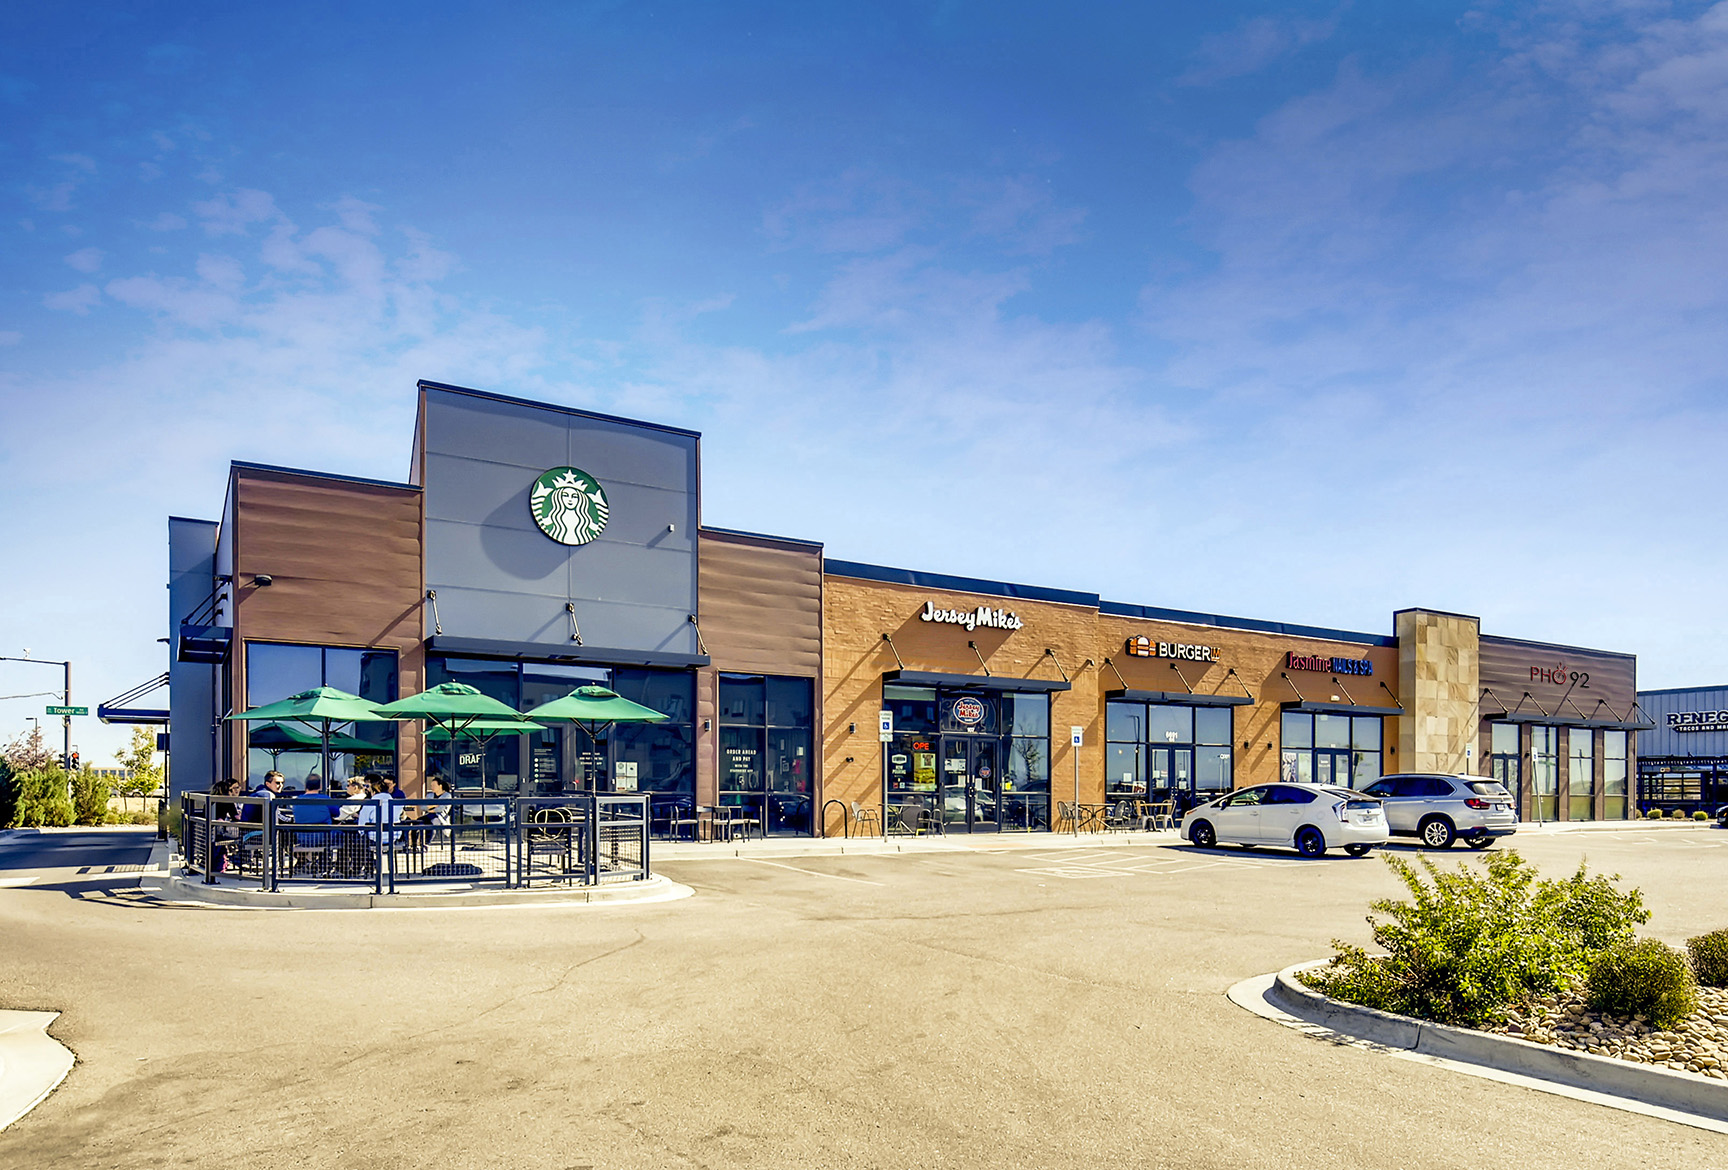 Hanley Investment Group Sells New Starbucks-Anchored Multi-Tenant Retail Building at Hotel Row in Denver for $5.6 Million